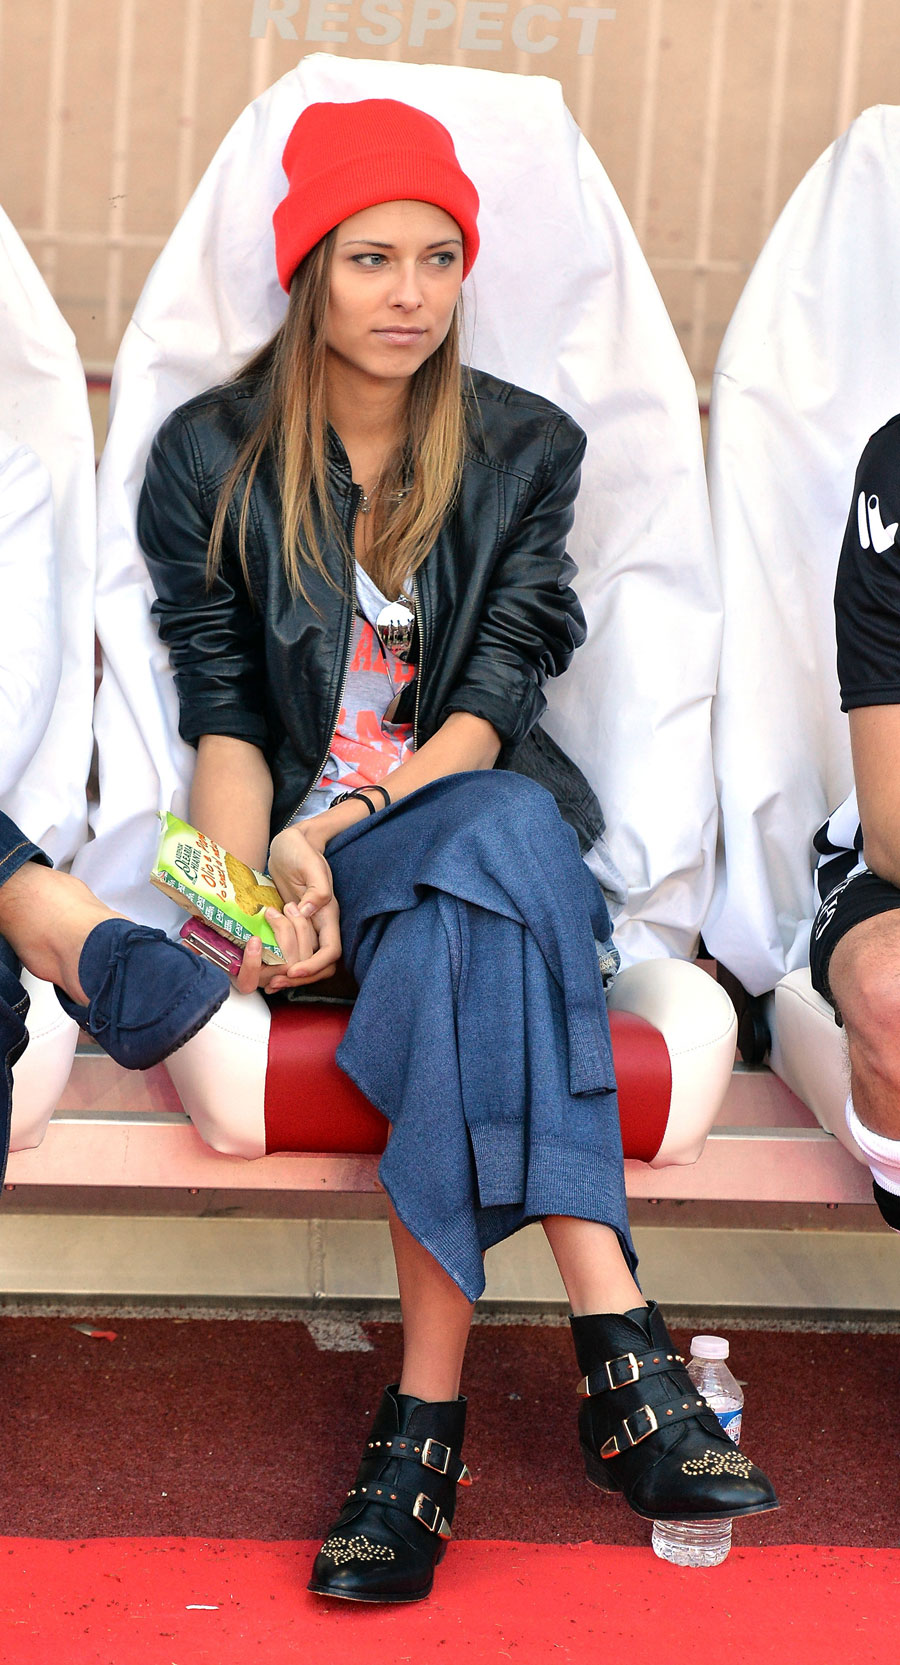 Dasha Kapustina, Fernando Alonso's girlfriend, watches the match